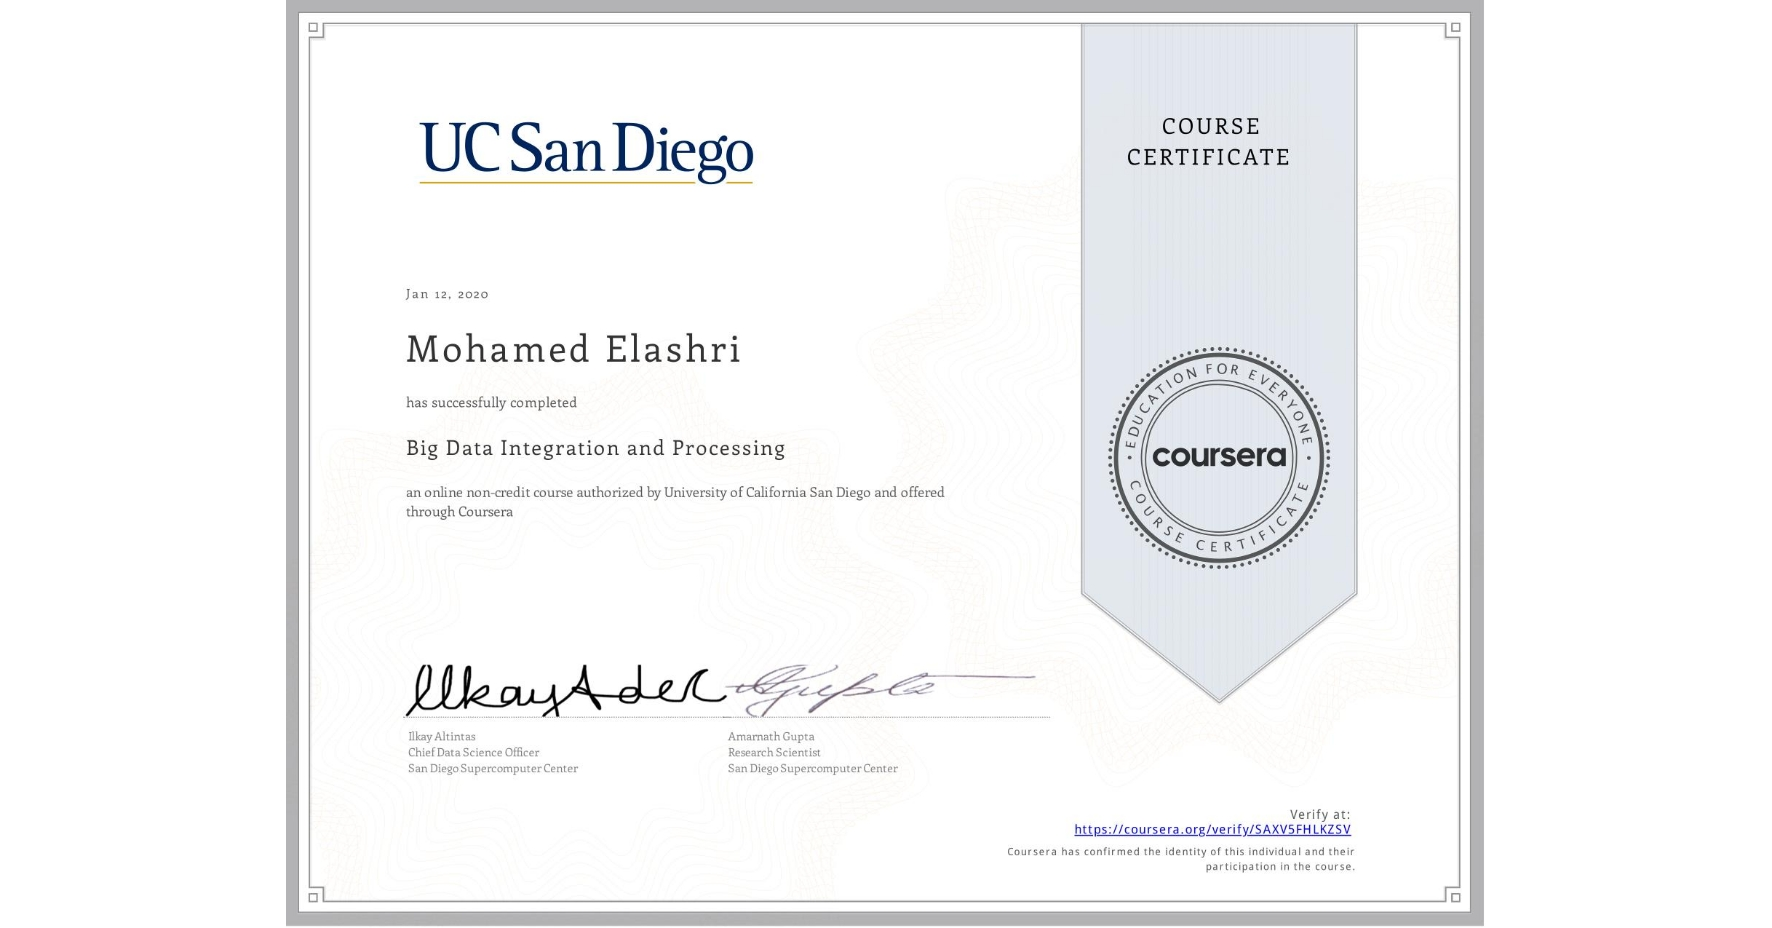 View certificate for Mohamed Elashri, Big Data Integration and Processing, an online non-credit course authorized by University of California San Diego and offered through Coursera